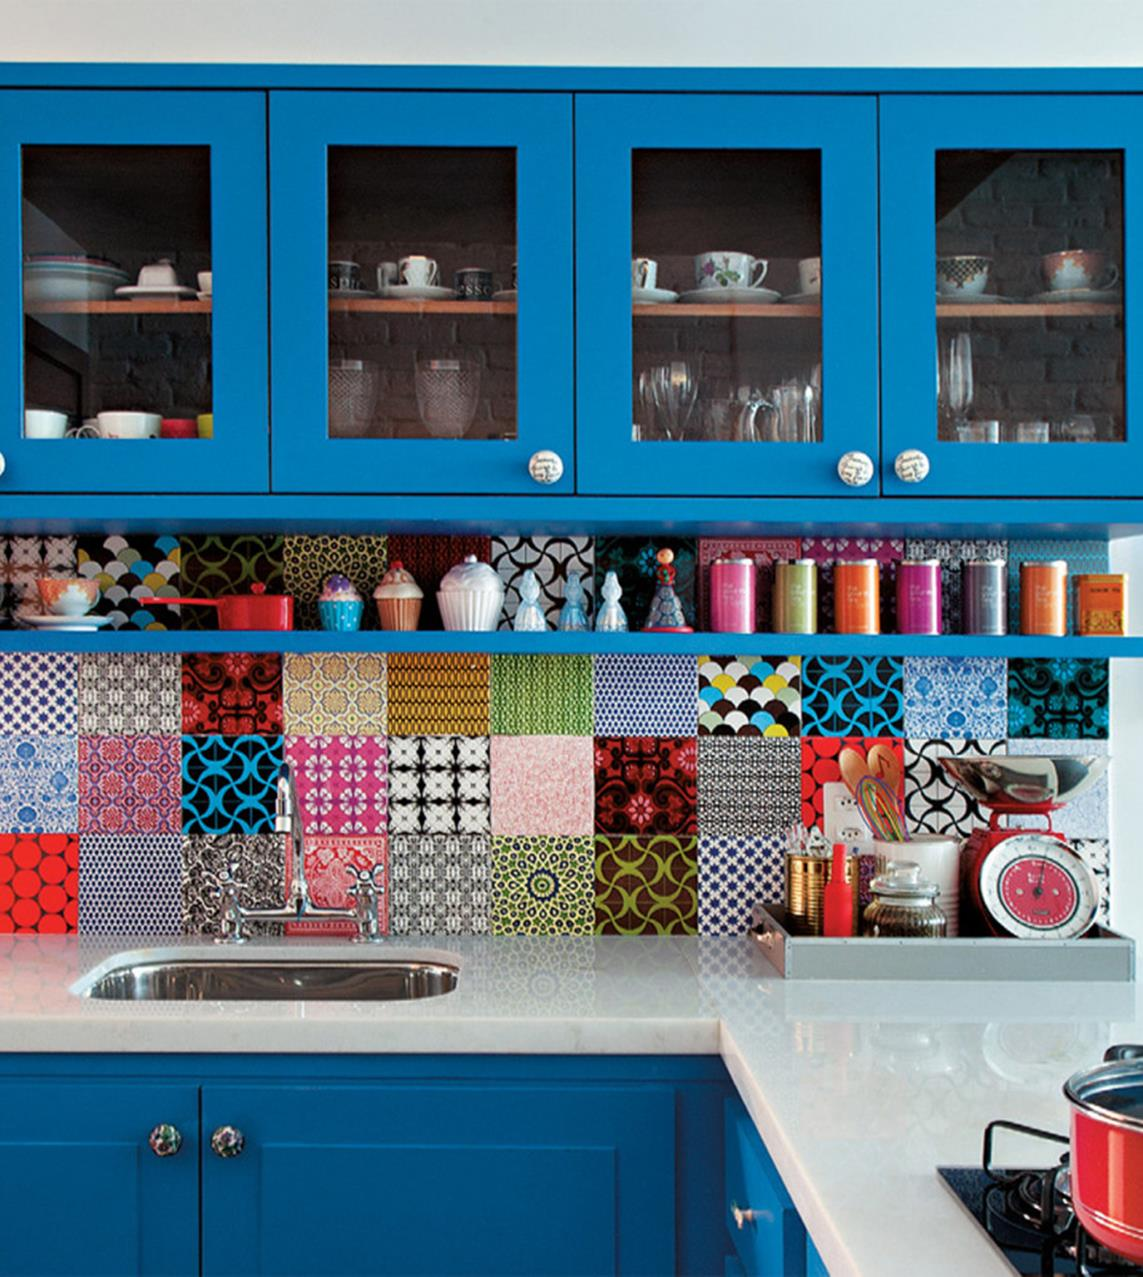 Projects to Make Kitchen More Neat and Beautiful 12